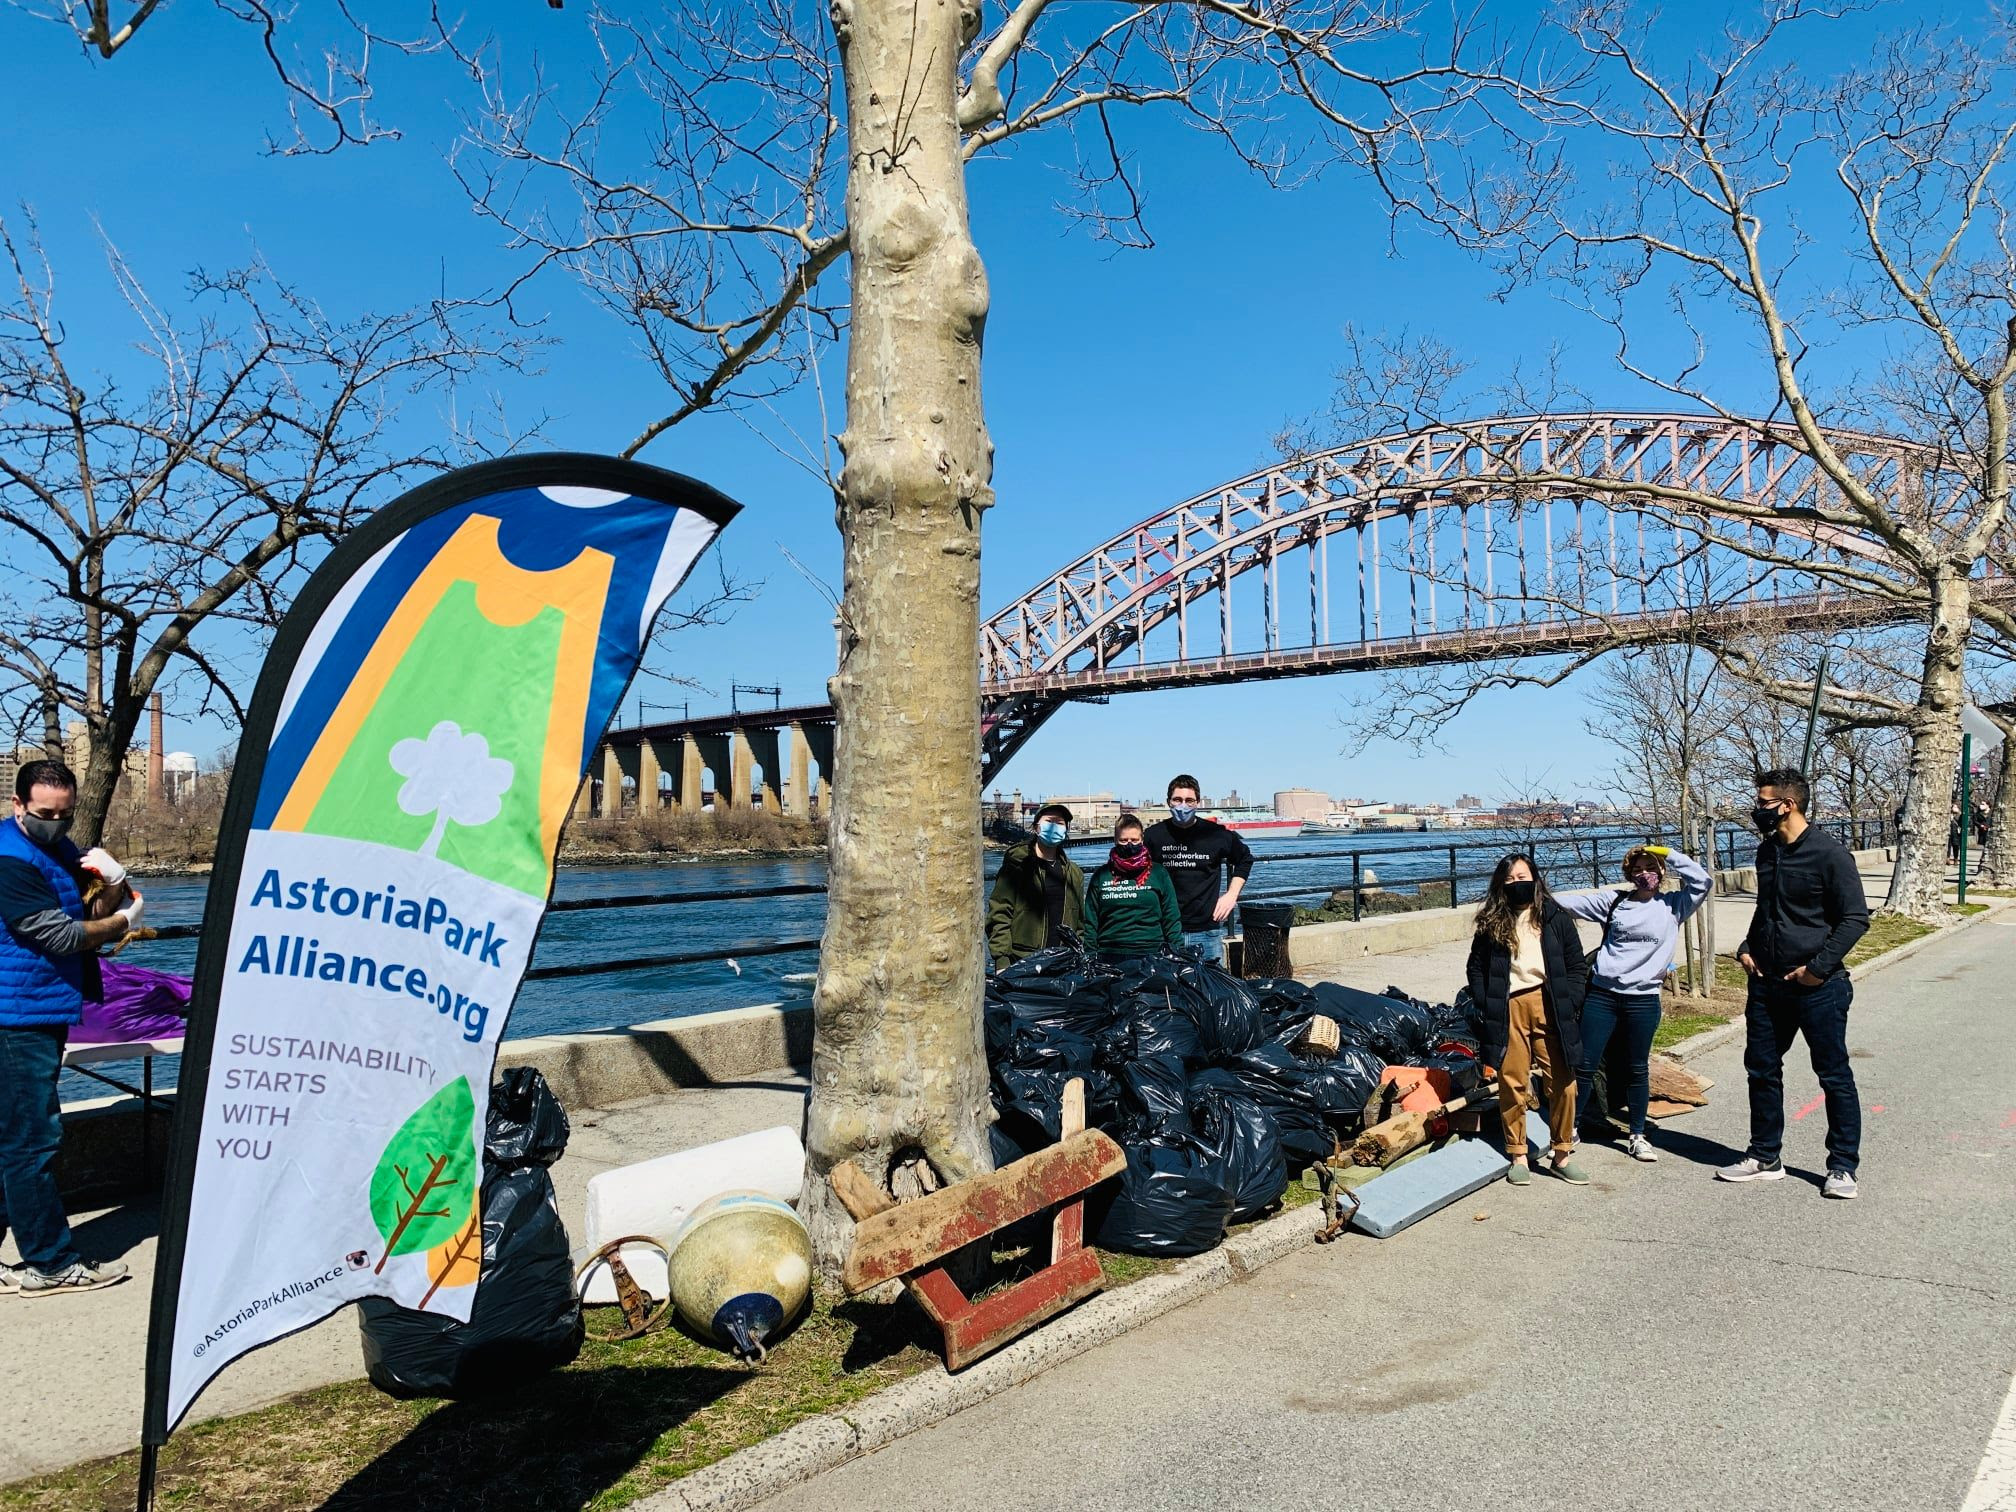 The Astoria Park Alliance 2021 Shoreline Cleanup